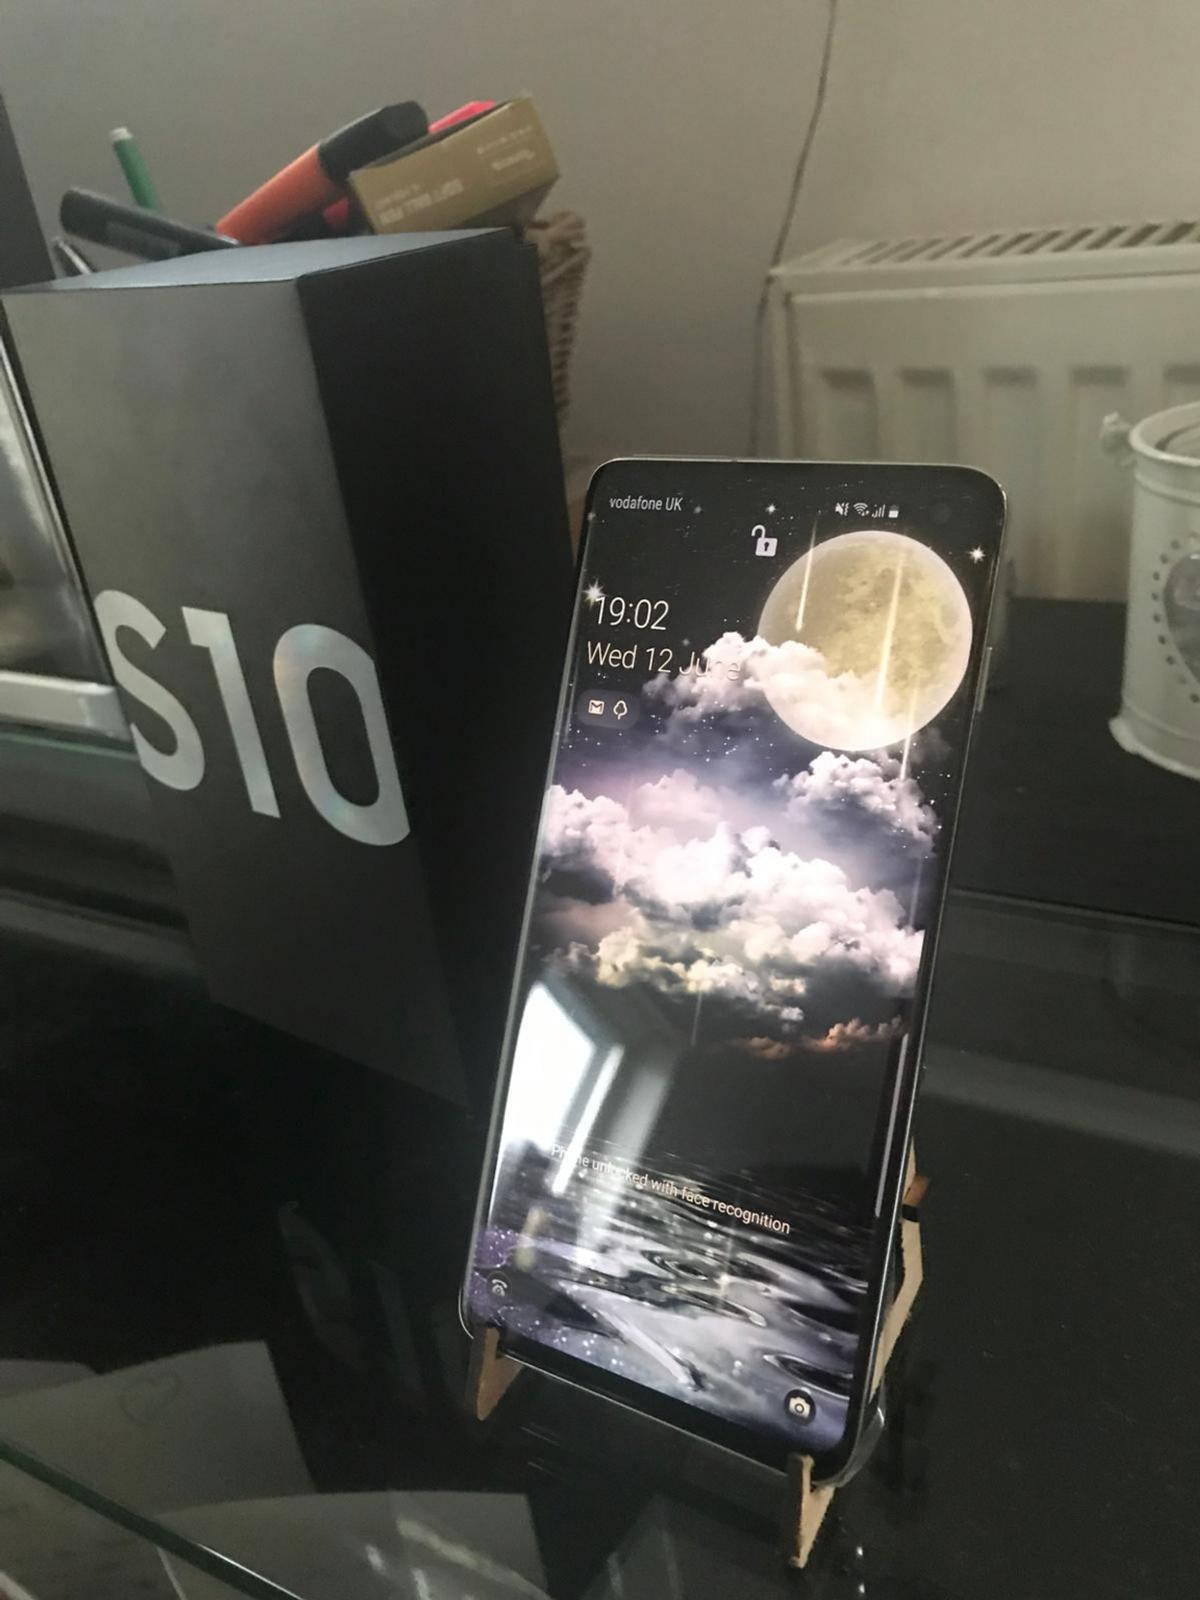 Samsung s10 2 weeks old offers!! in M11 Manchester for